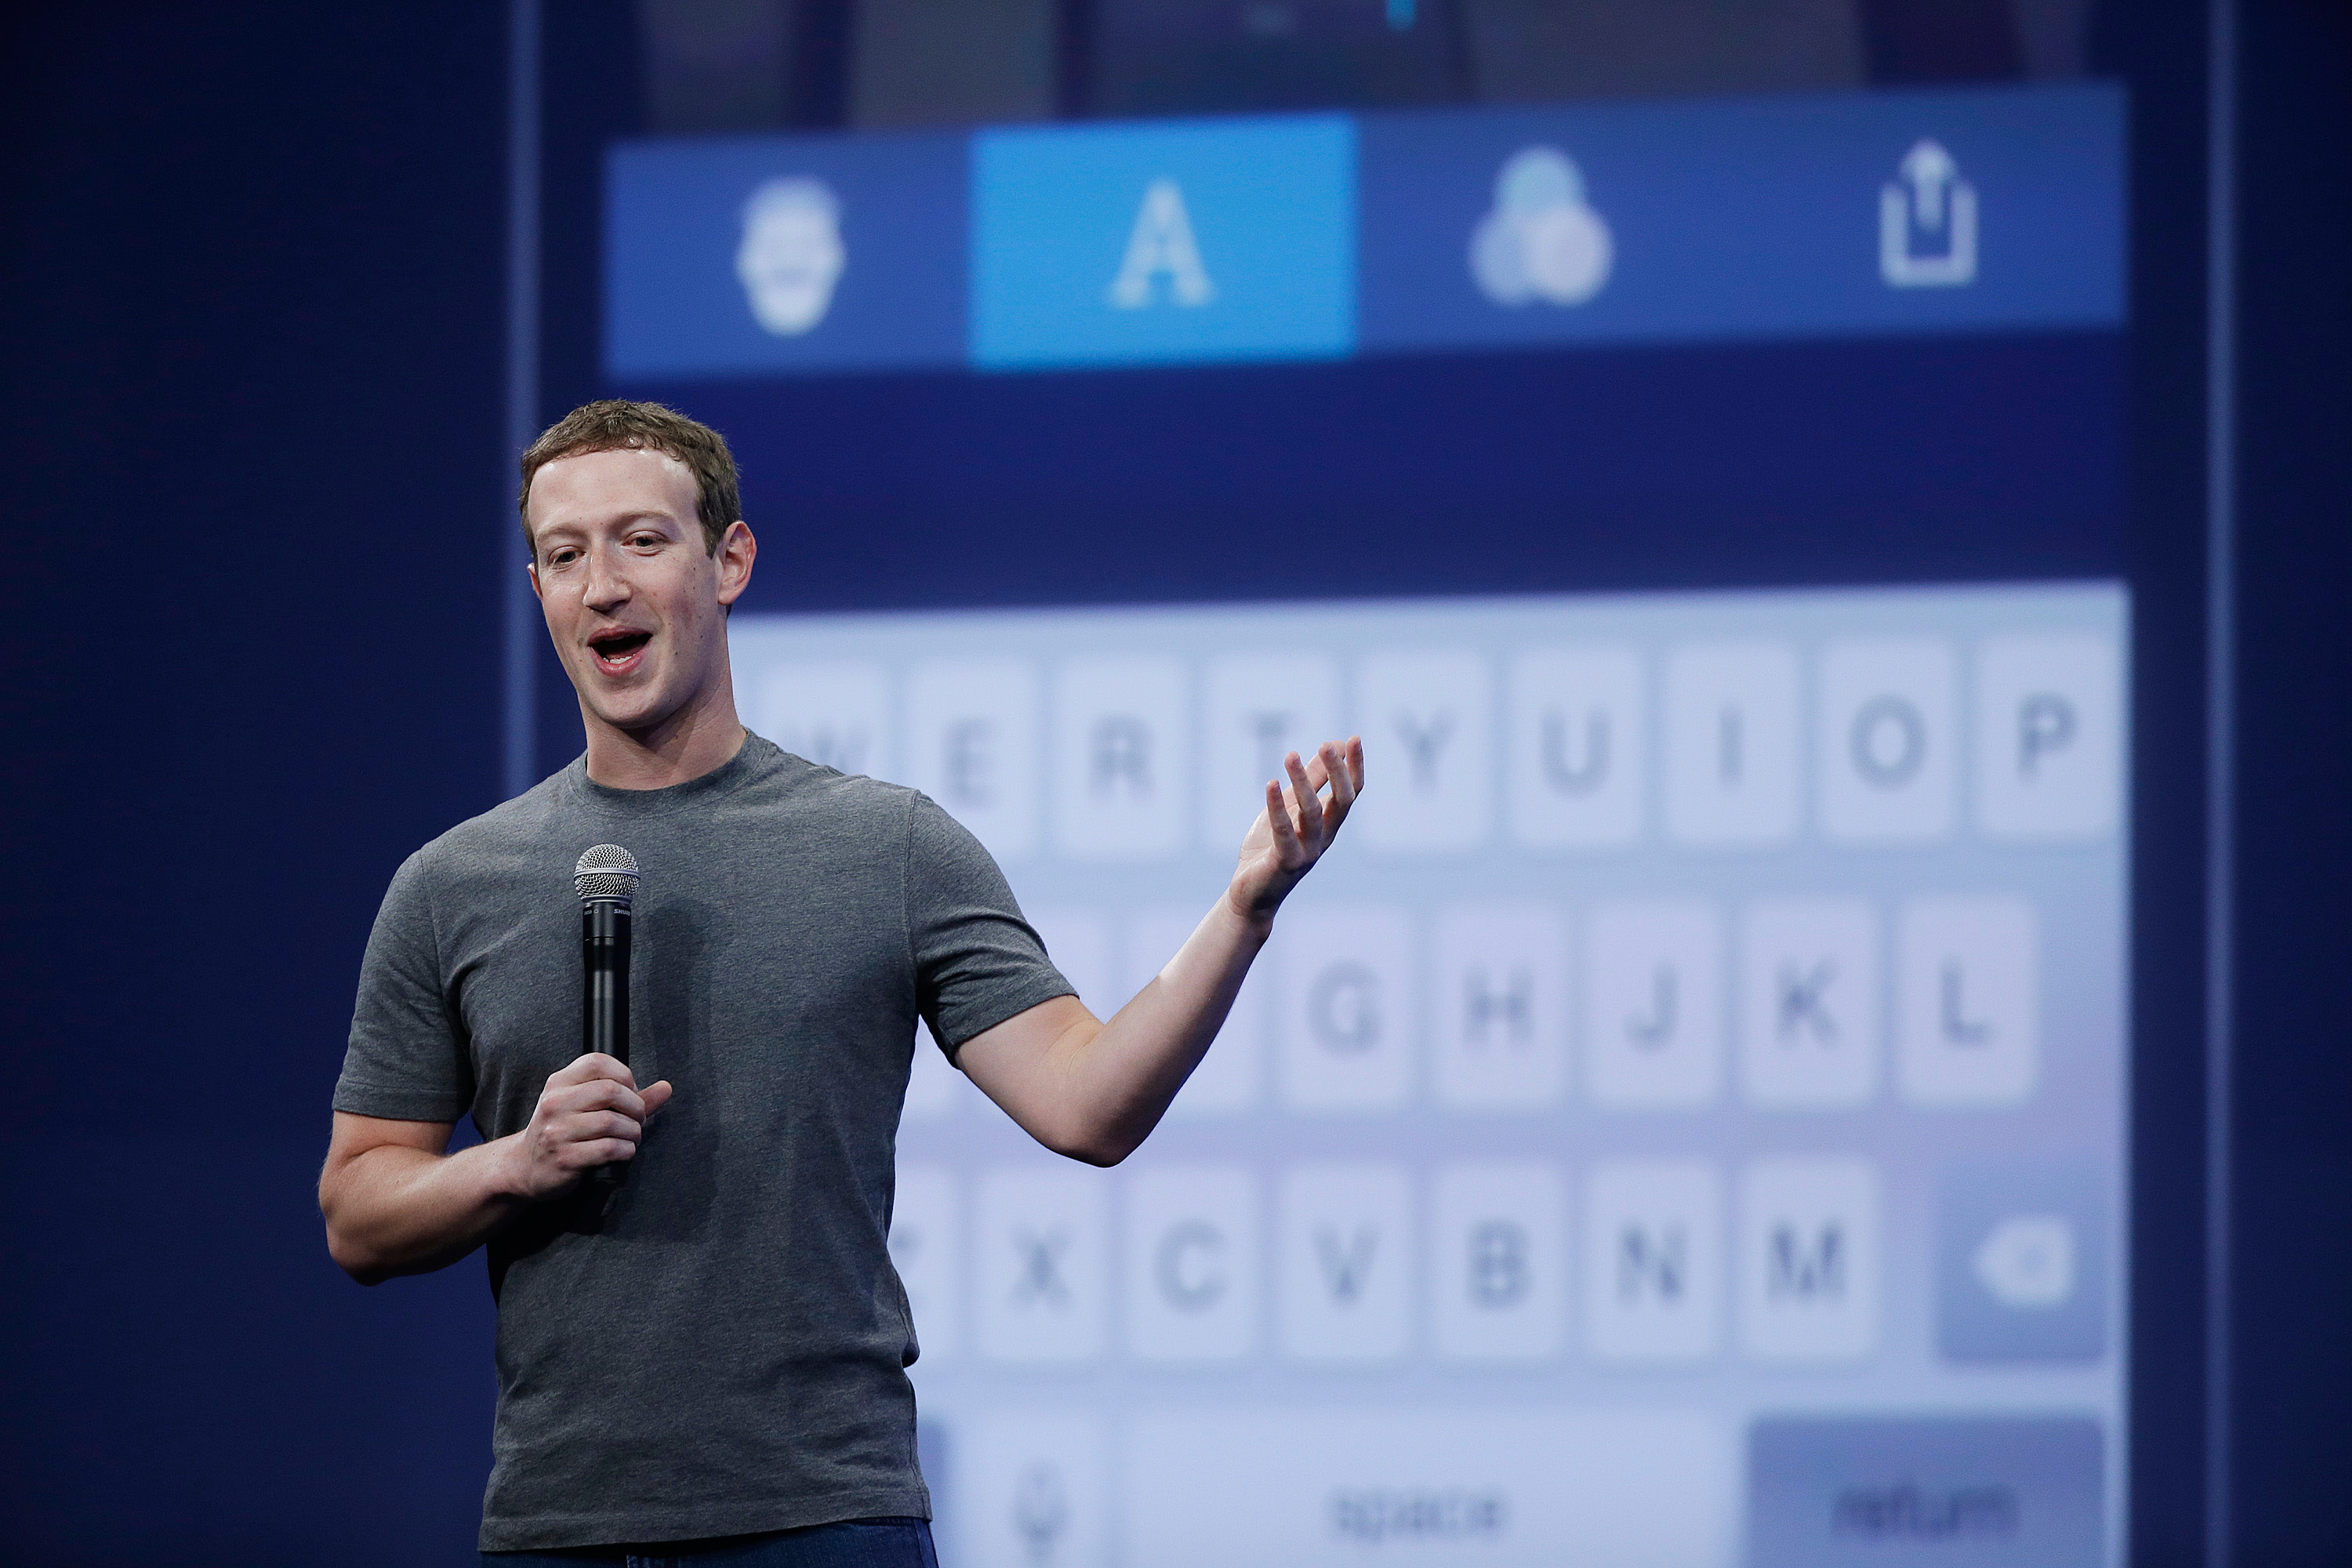 FILE - In this March 25, 2015, file photo, Mark Zuckerberg talks about the Messenger app during the Facebook F8 Developer Conference in San Francisco. Facebook reports quarterly financial results on Wednesday, Nov. 4, 2015. (AP Photo/Eric Risberg, File)